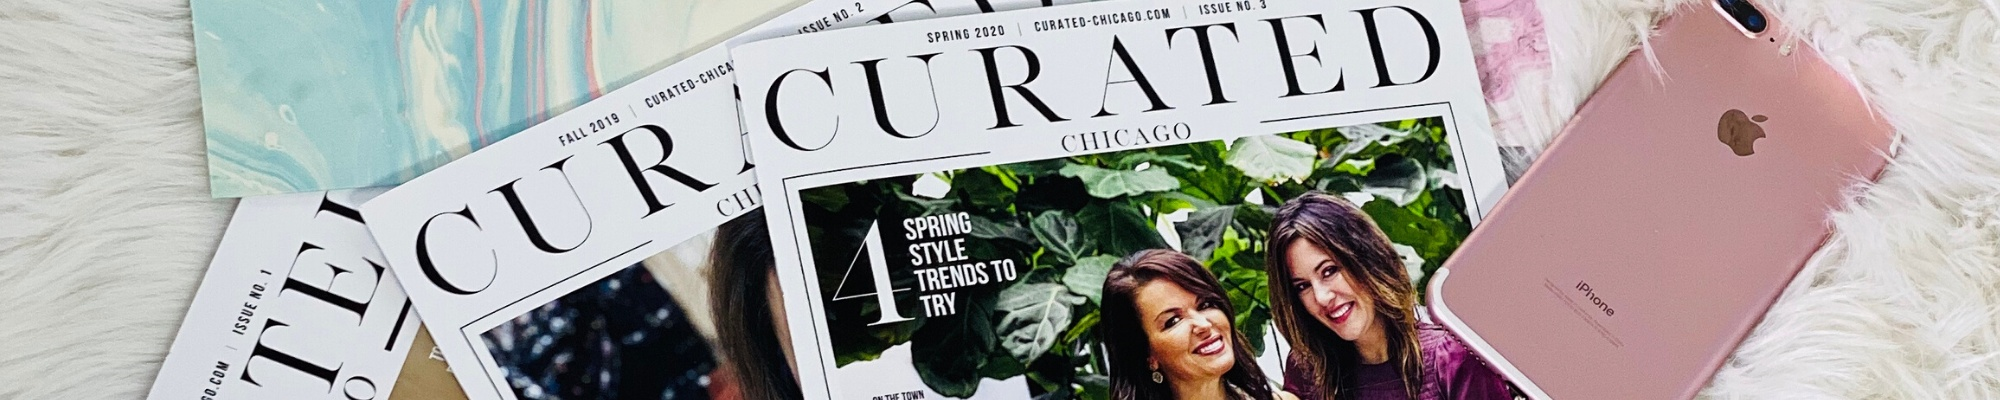 curatedchicago Cover